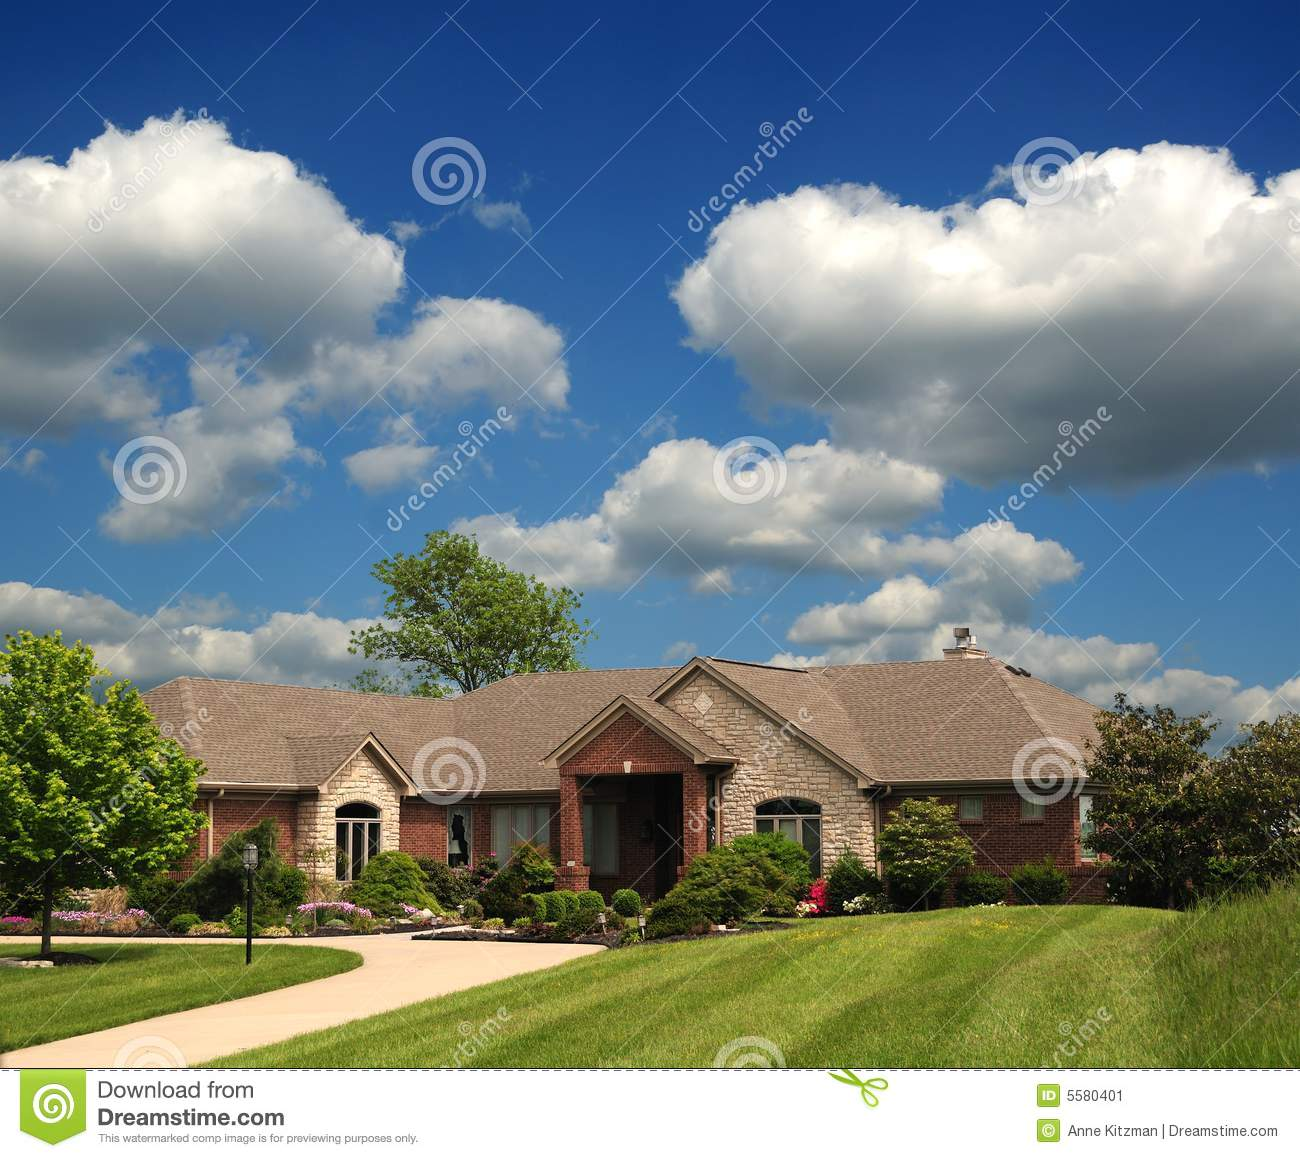 One Story Luxury Home: Brick Suburban Ranch Home Stock Image. Image Of Stone